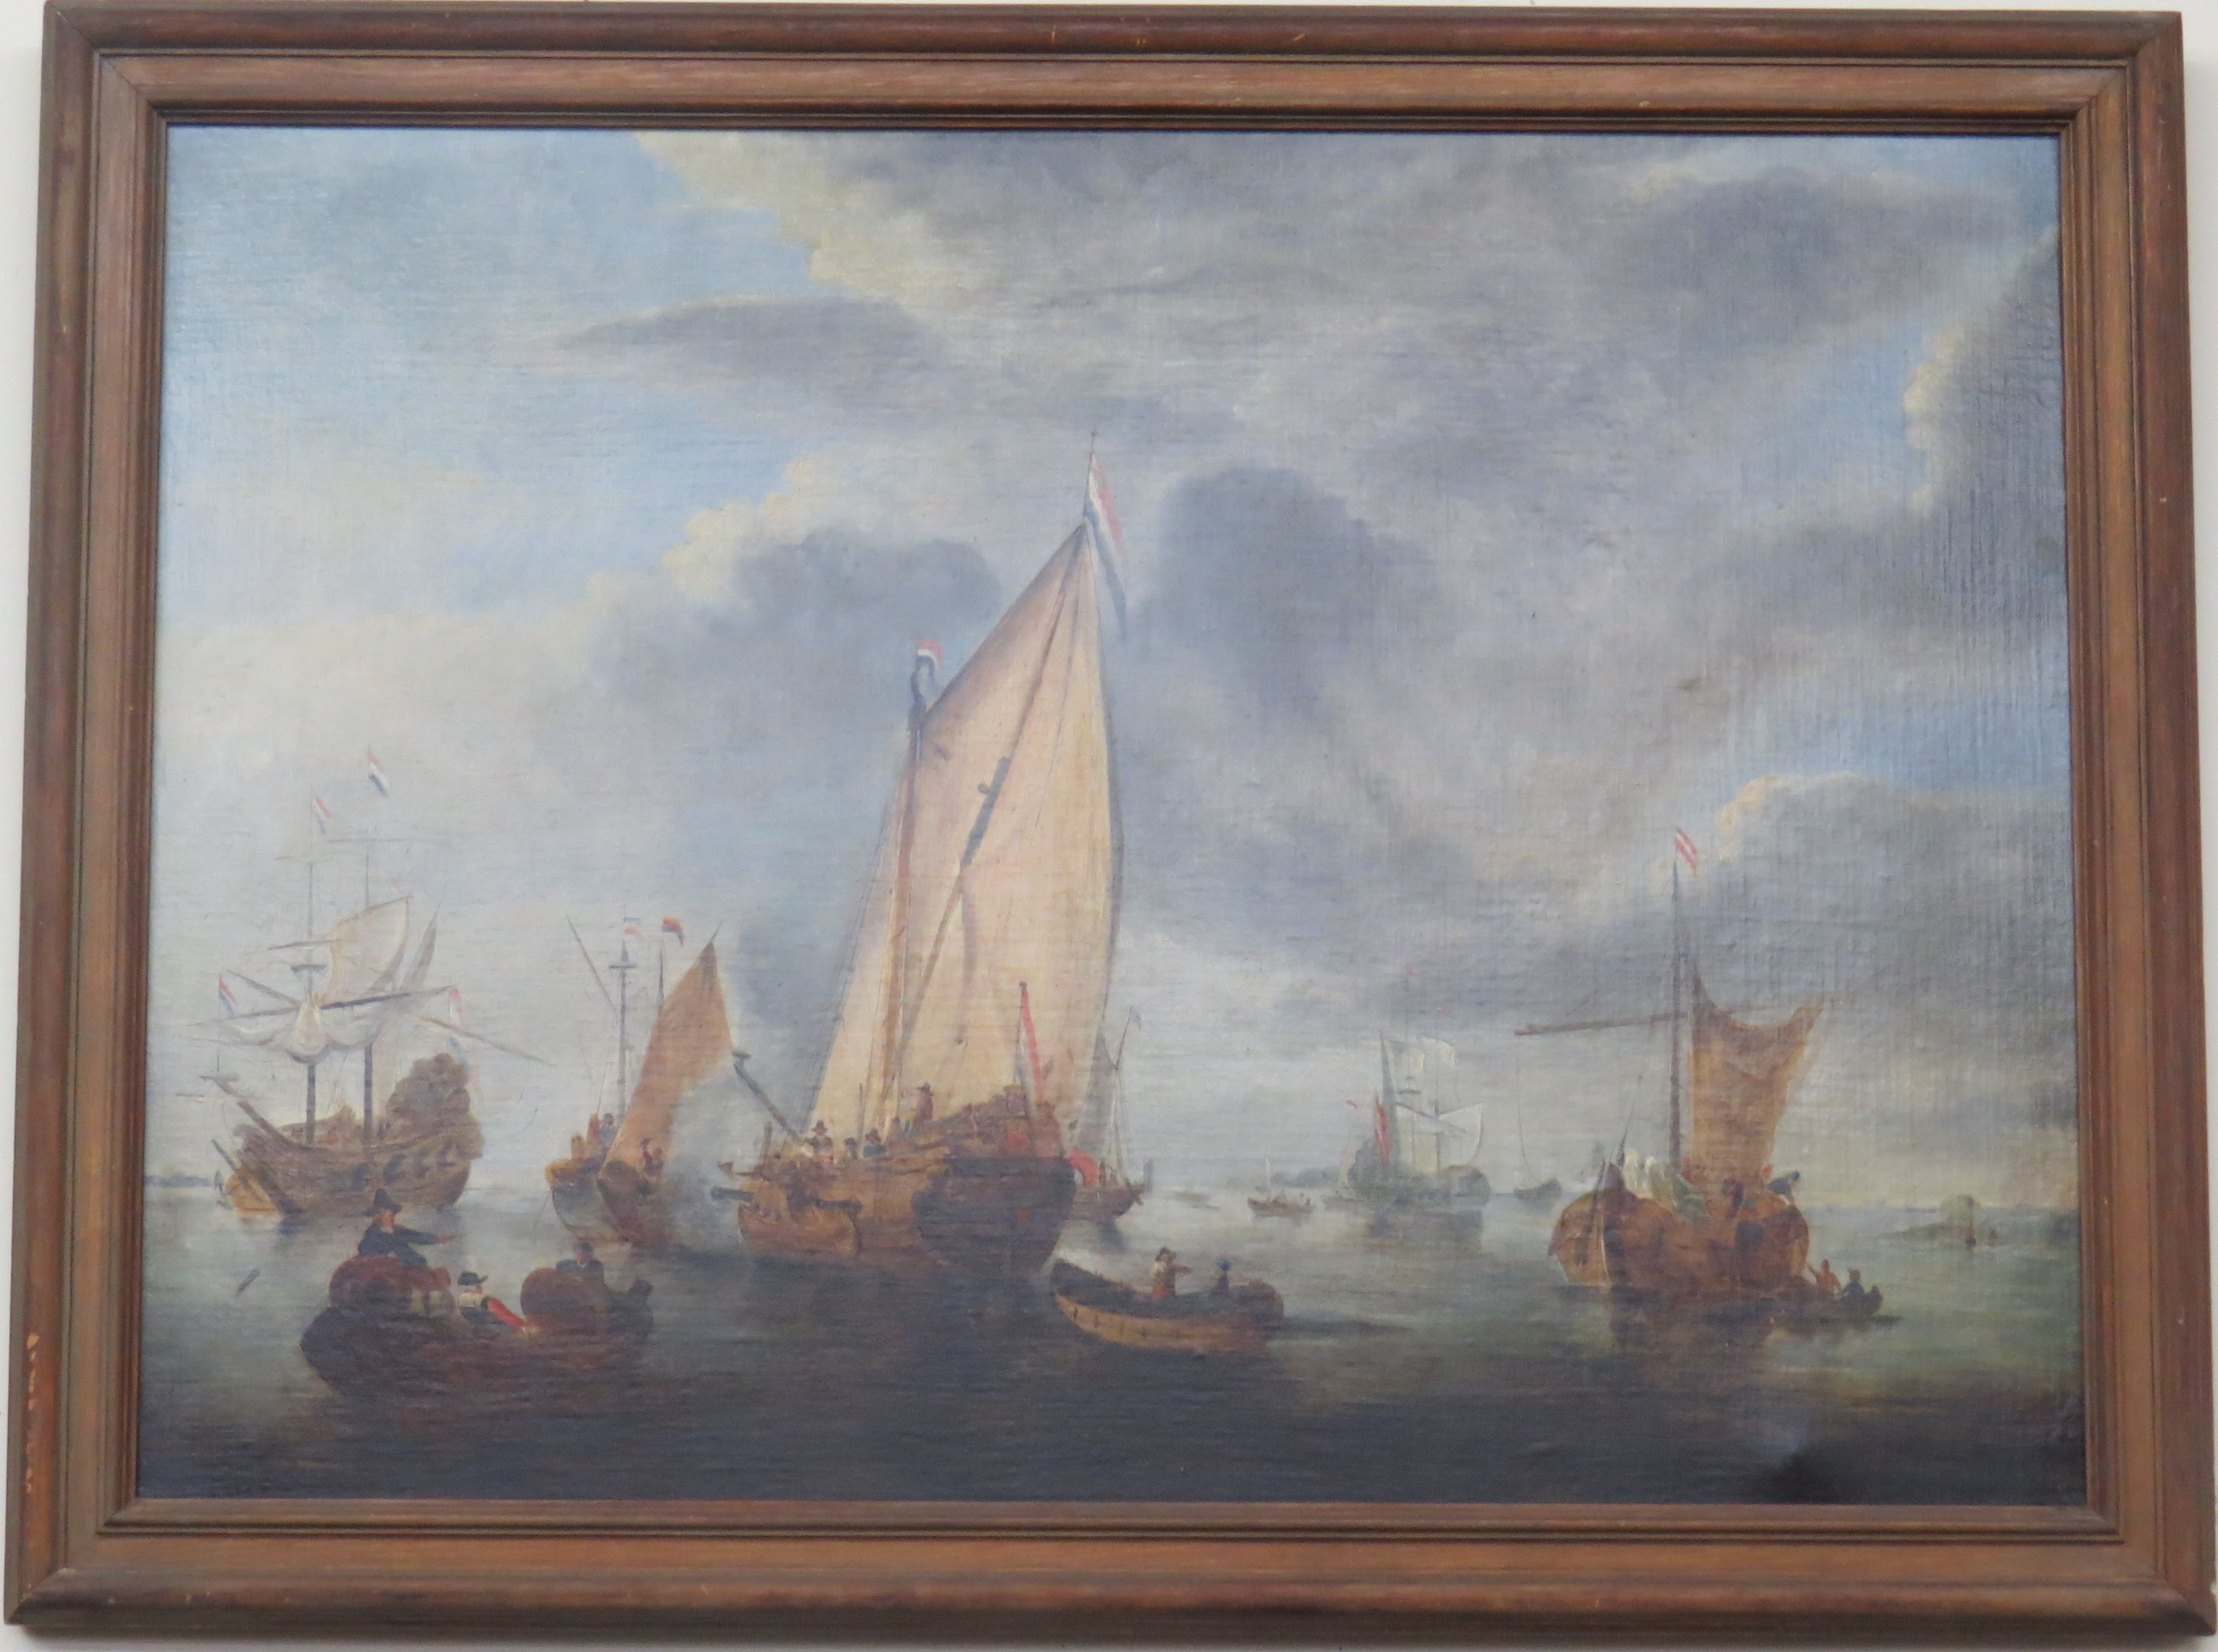 Oil on Canvas of a Nautical Scene with Dutch Ships Preparing for Battle